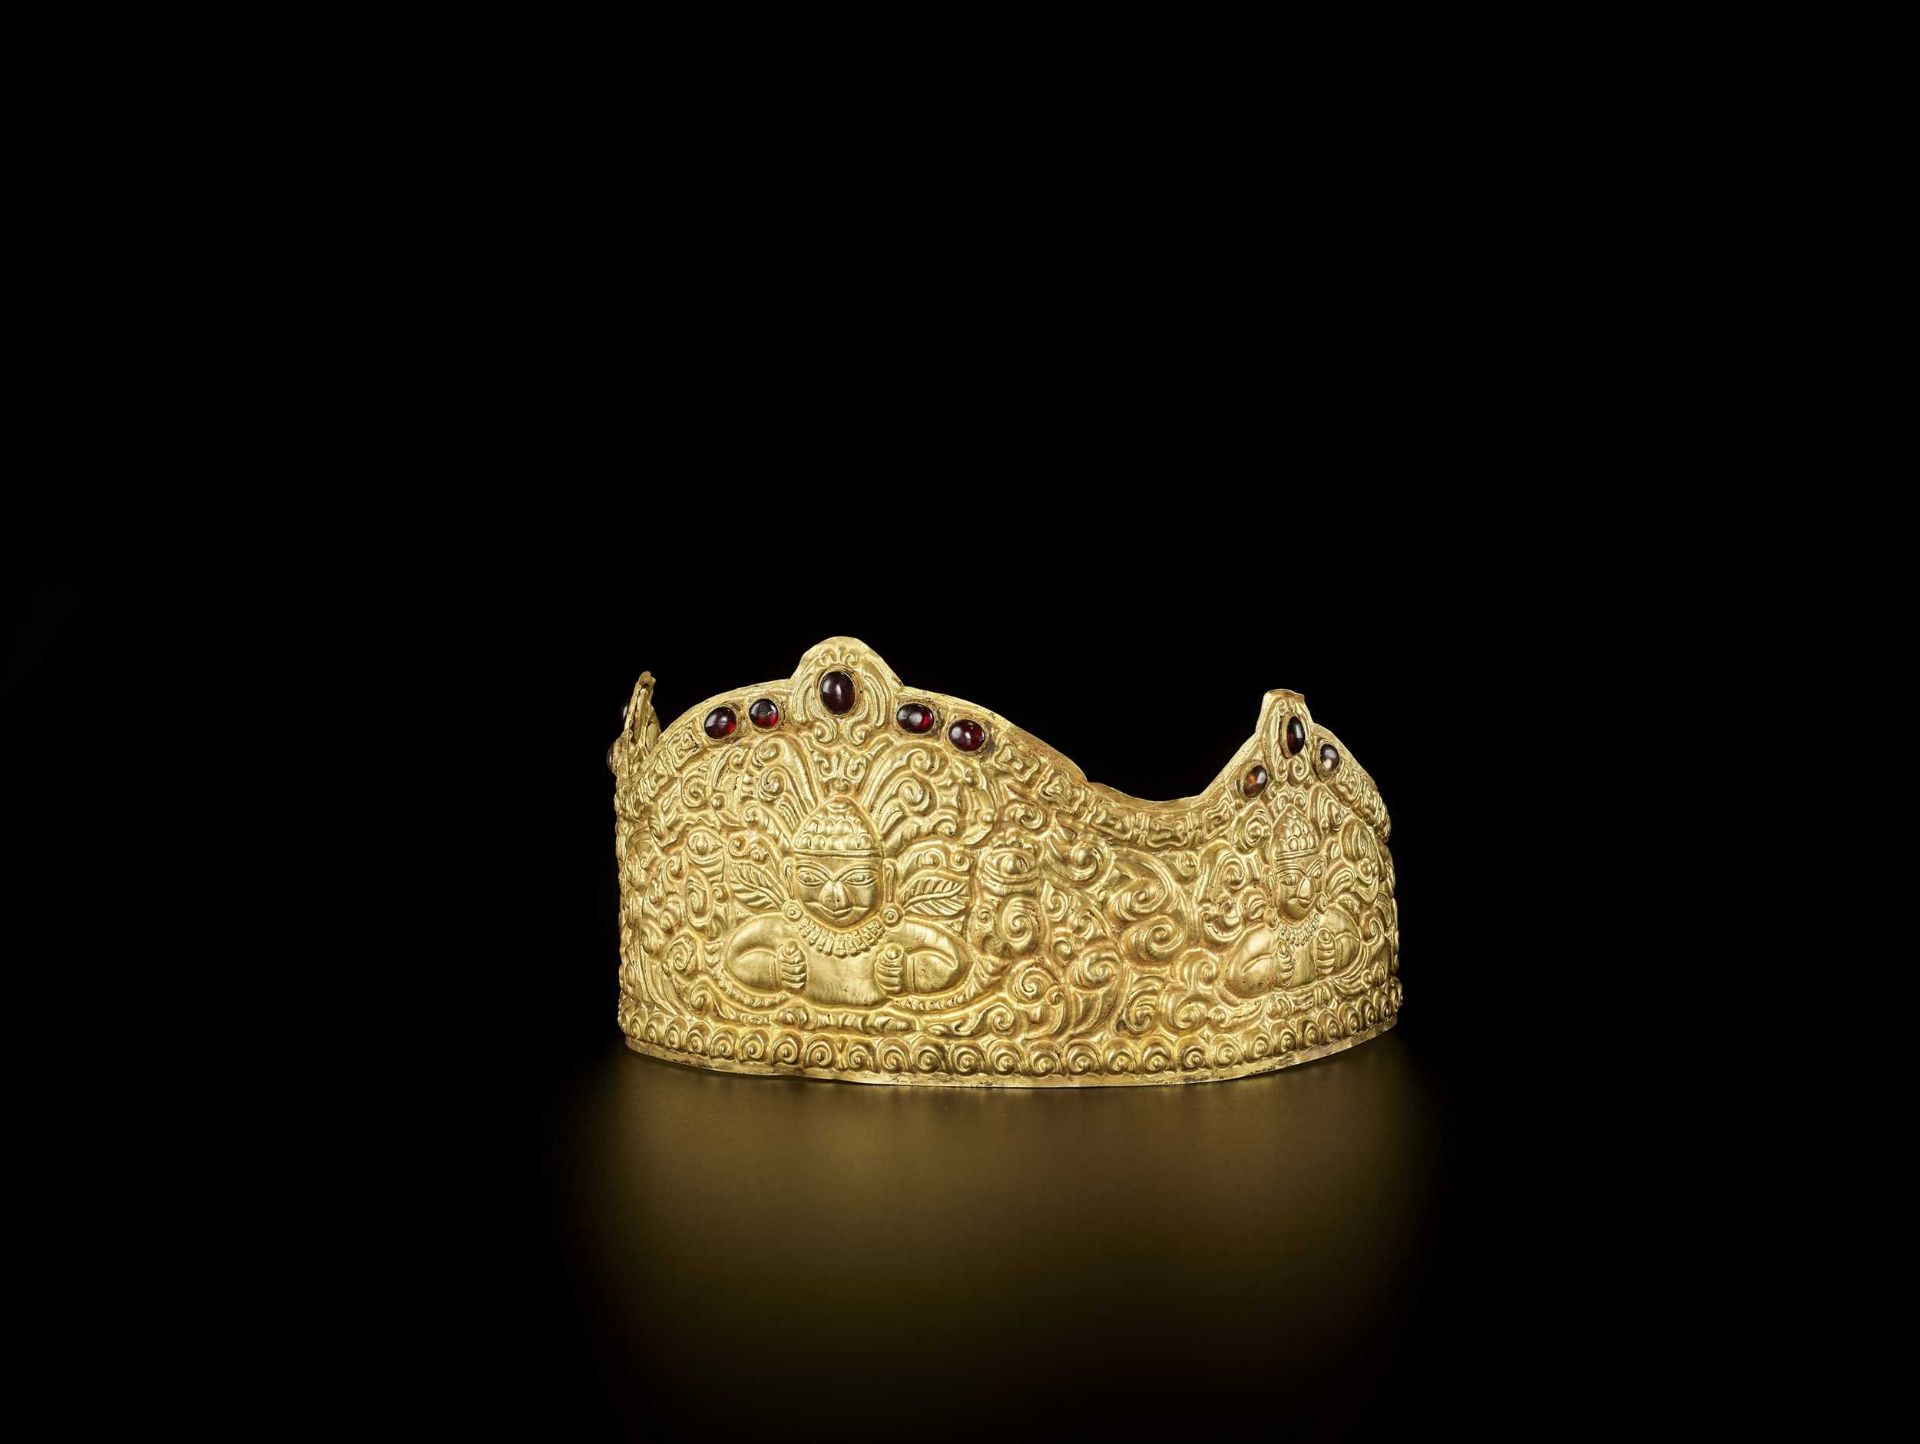 AN EXTRE MELY RARE AND FINE CHAM GEMSTONE-SET GOLD REPOUSSÉ CROWN WITH GARUDAS - Bild 9 aus 9